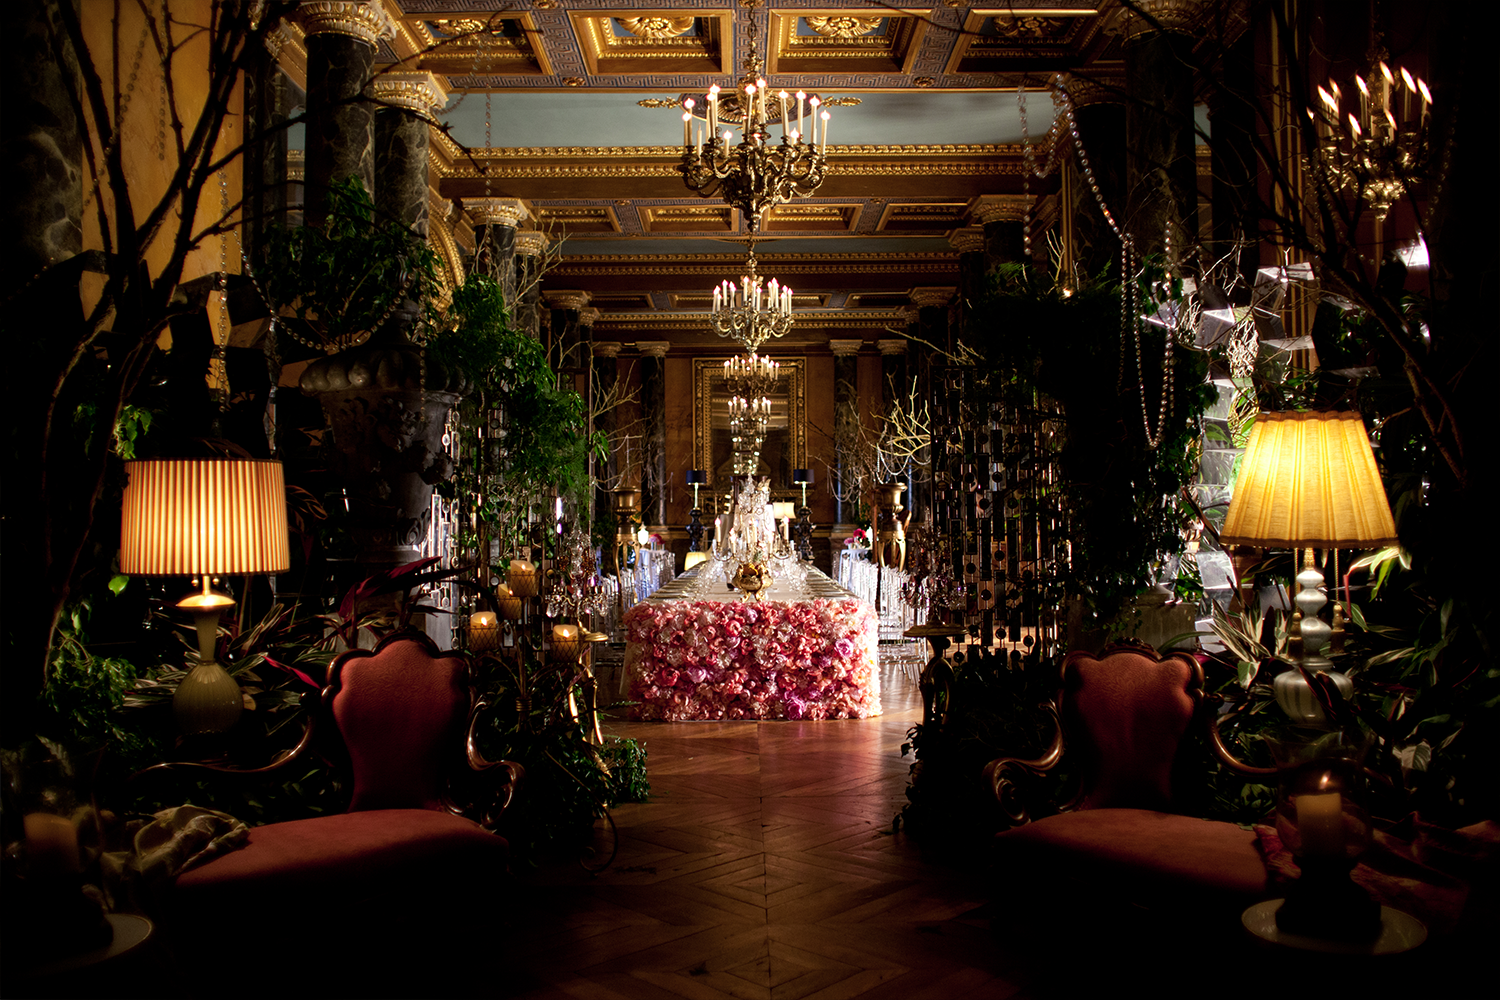 Ritz_Paris_pierre_bouttier_film_reouverture.png